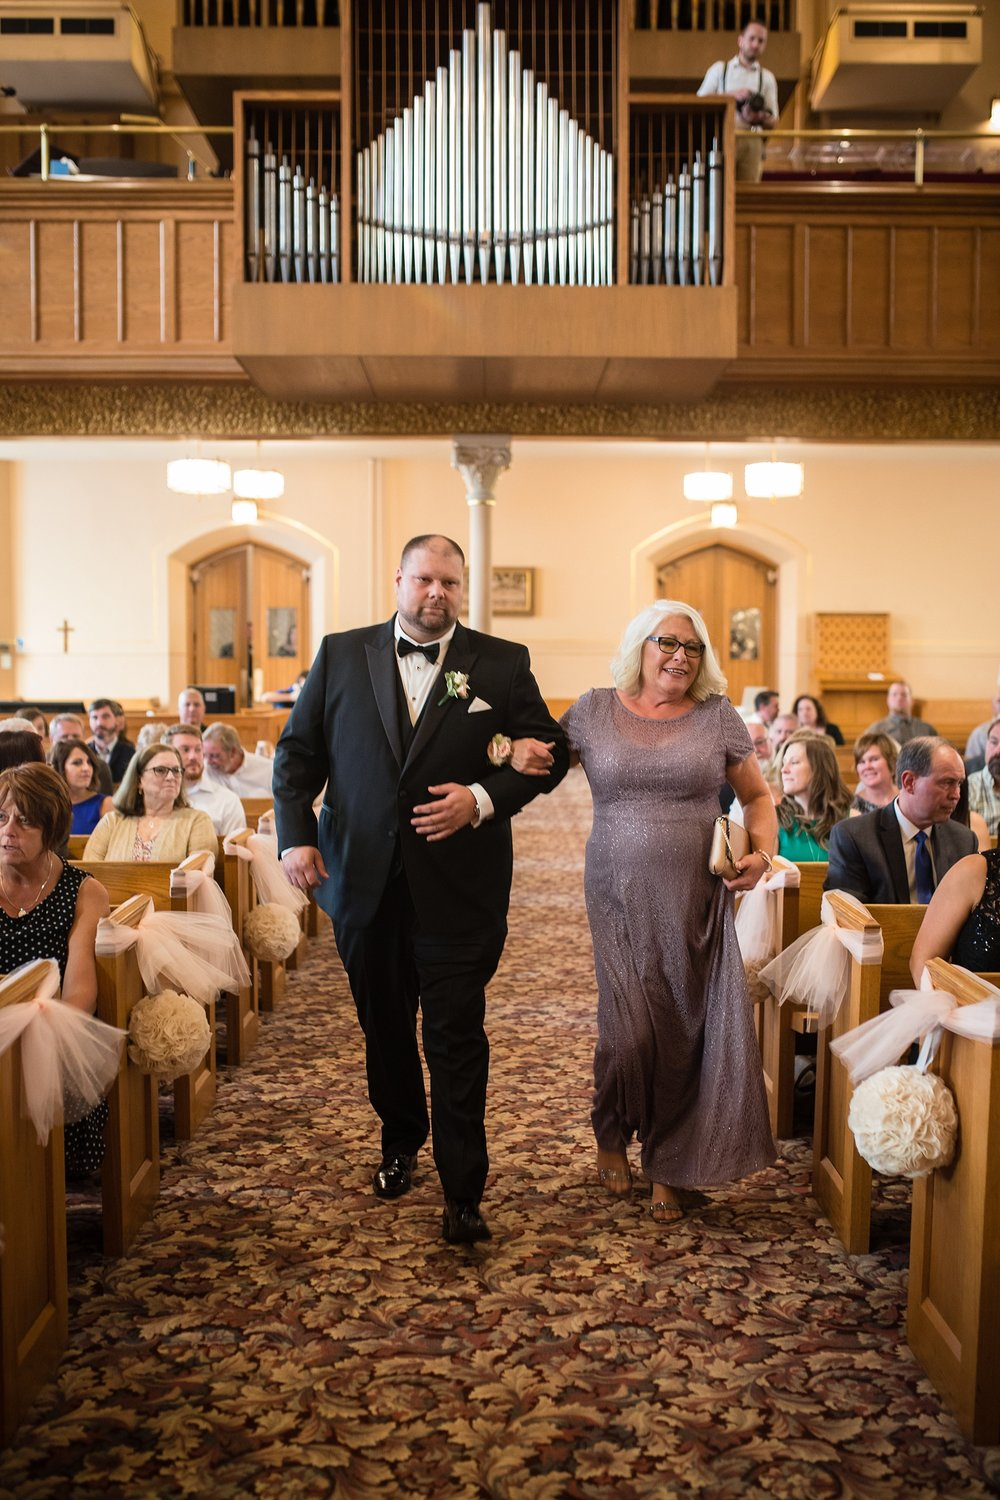 Brandon_Shafer_Photography_Brad_Sarah_Downtown_Grand_Rapids_Wedding_0022.jpg